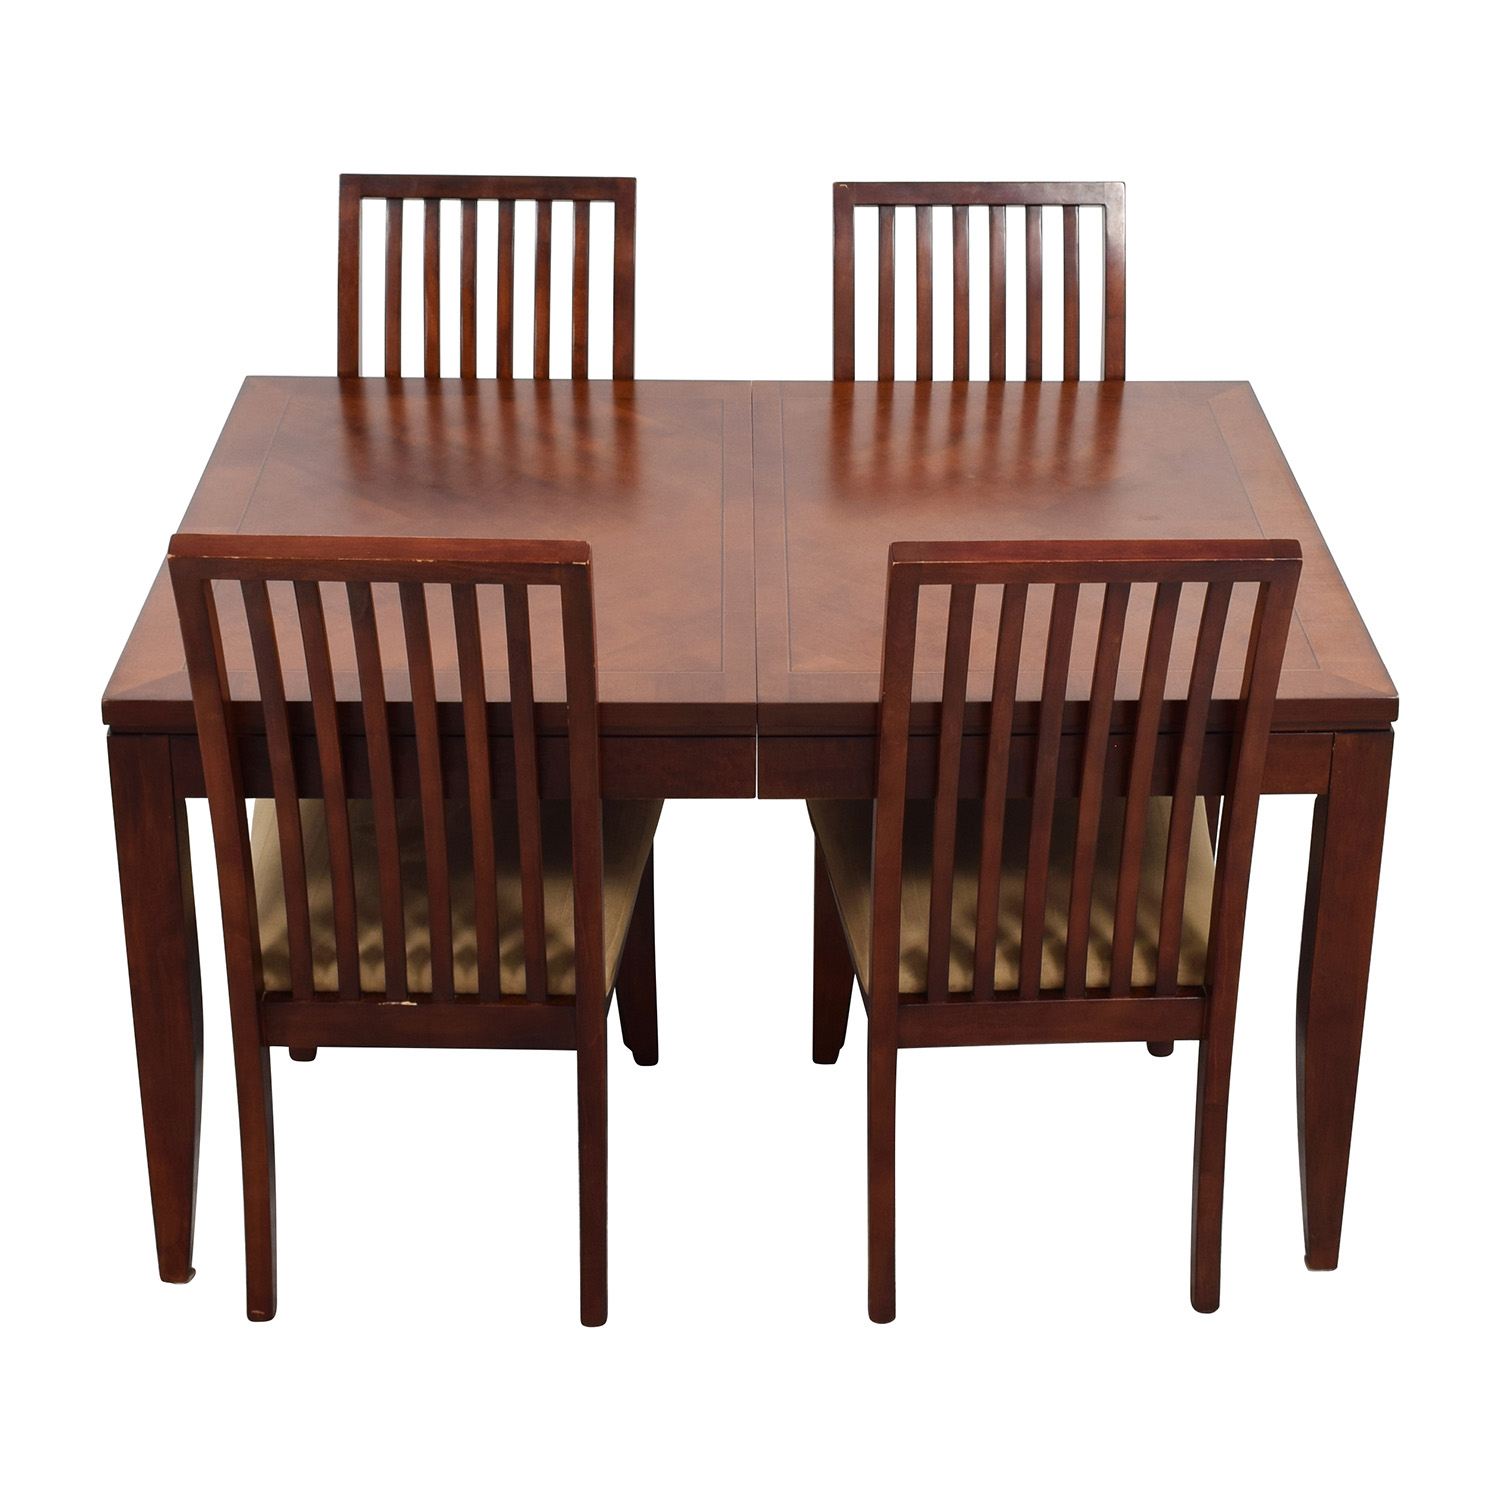 buy Macys Metropolitan Dining Set with Four Chairs Macys Tables